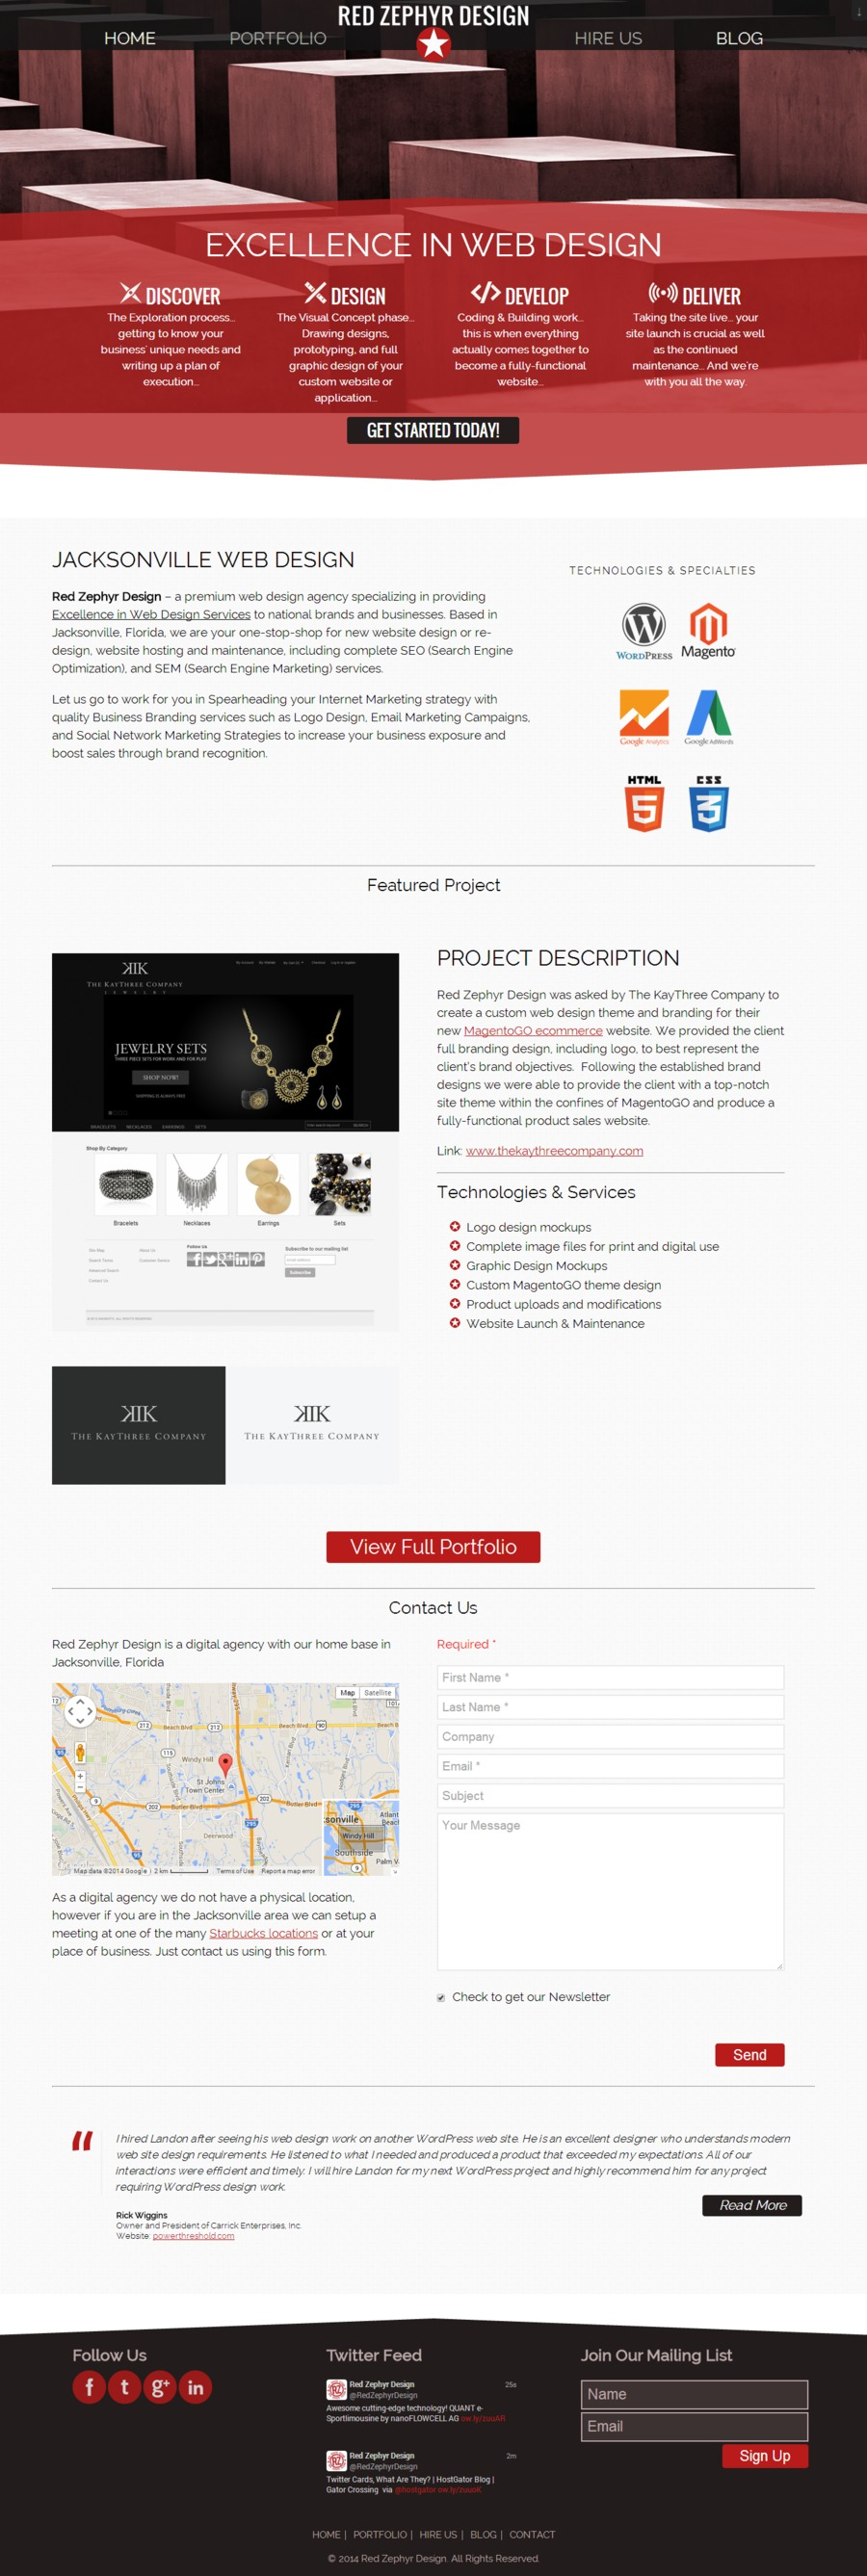 A great web design by Red Zephyr Design, Jacksonville, FL: